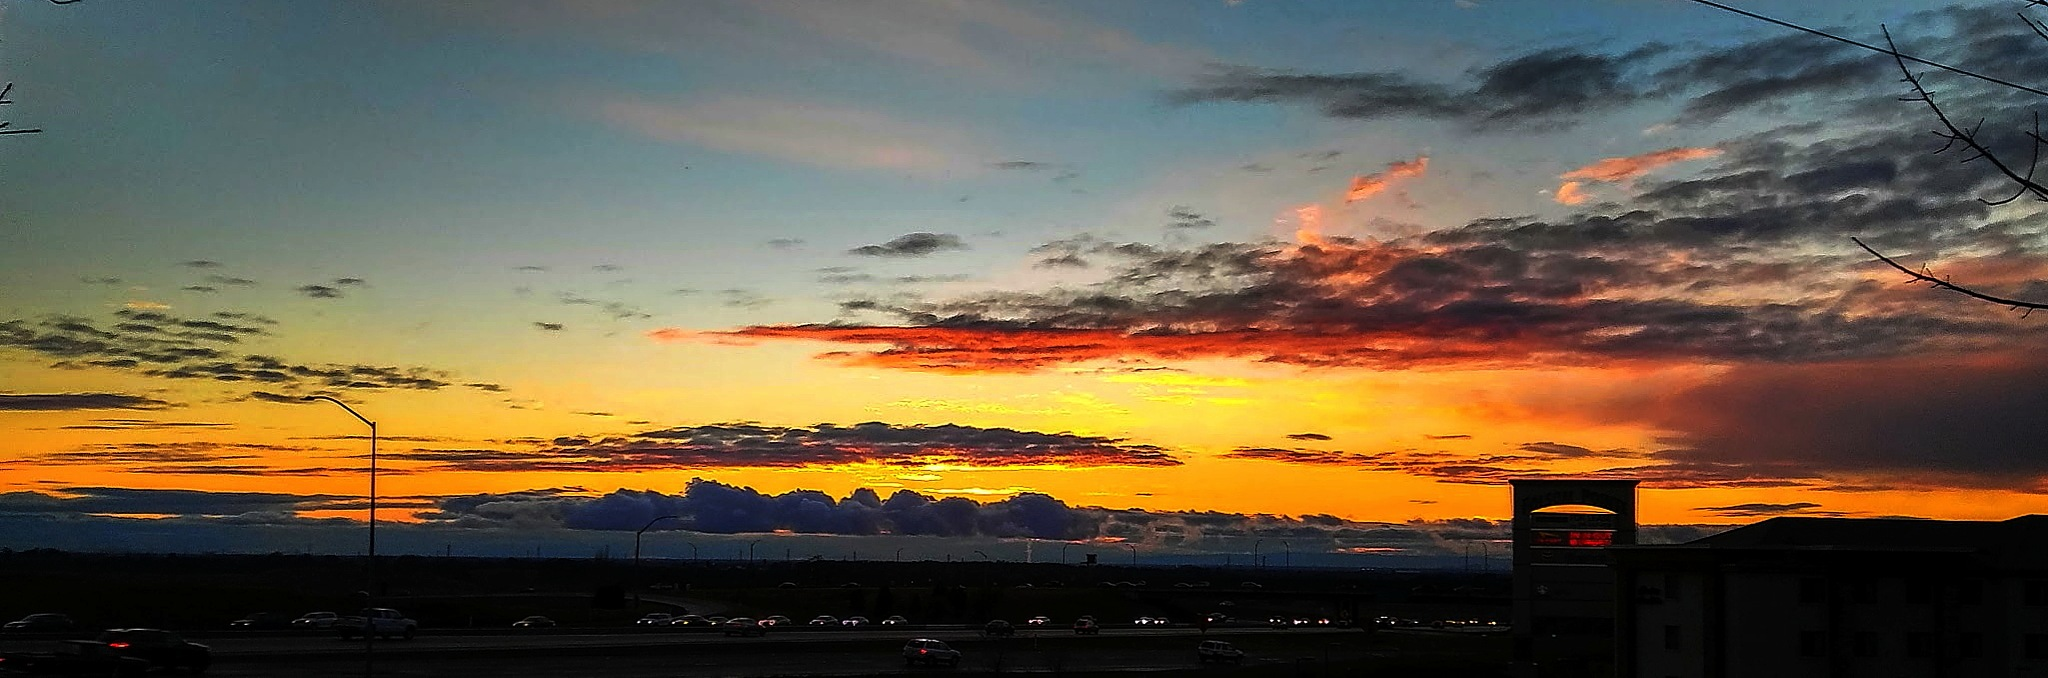 Pano of Costco Folsom by Laurie Puglia